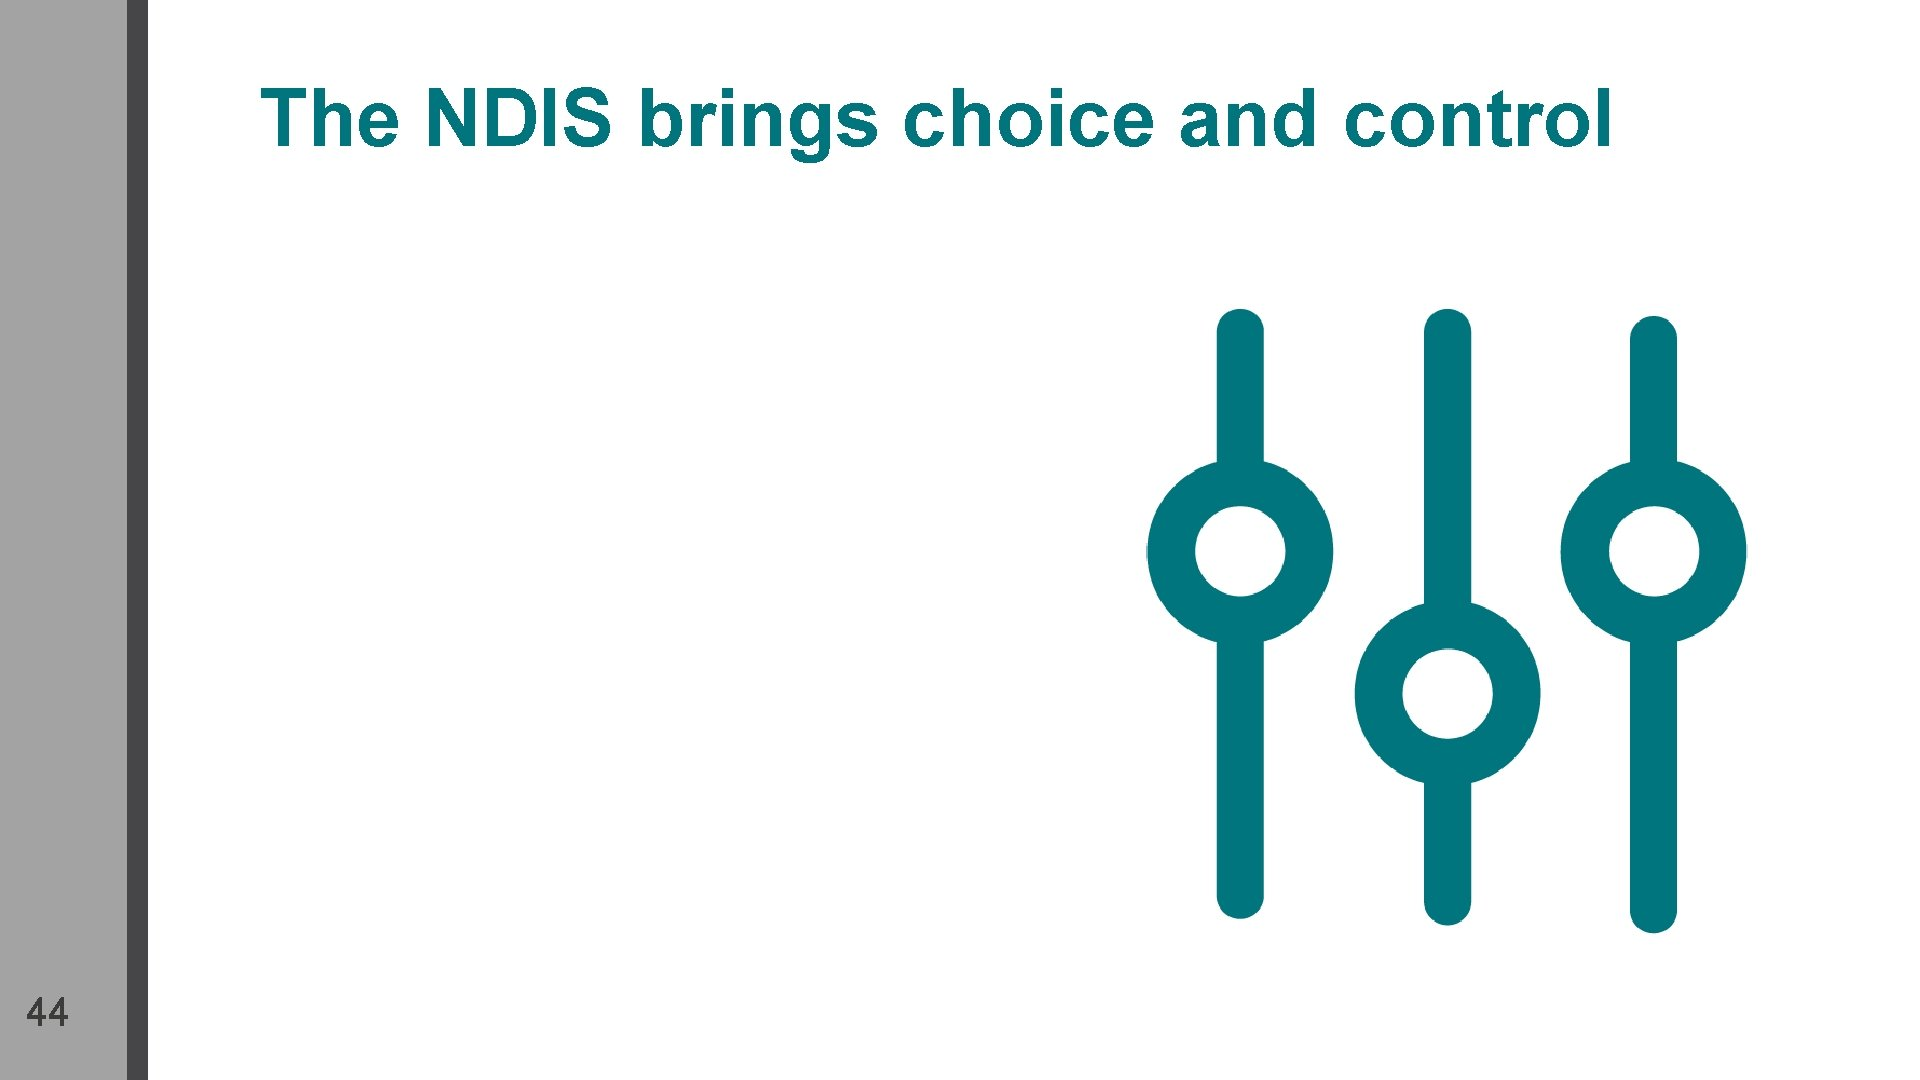 The NDIS brings choice and control 44